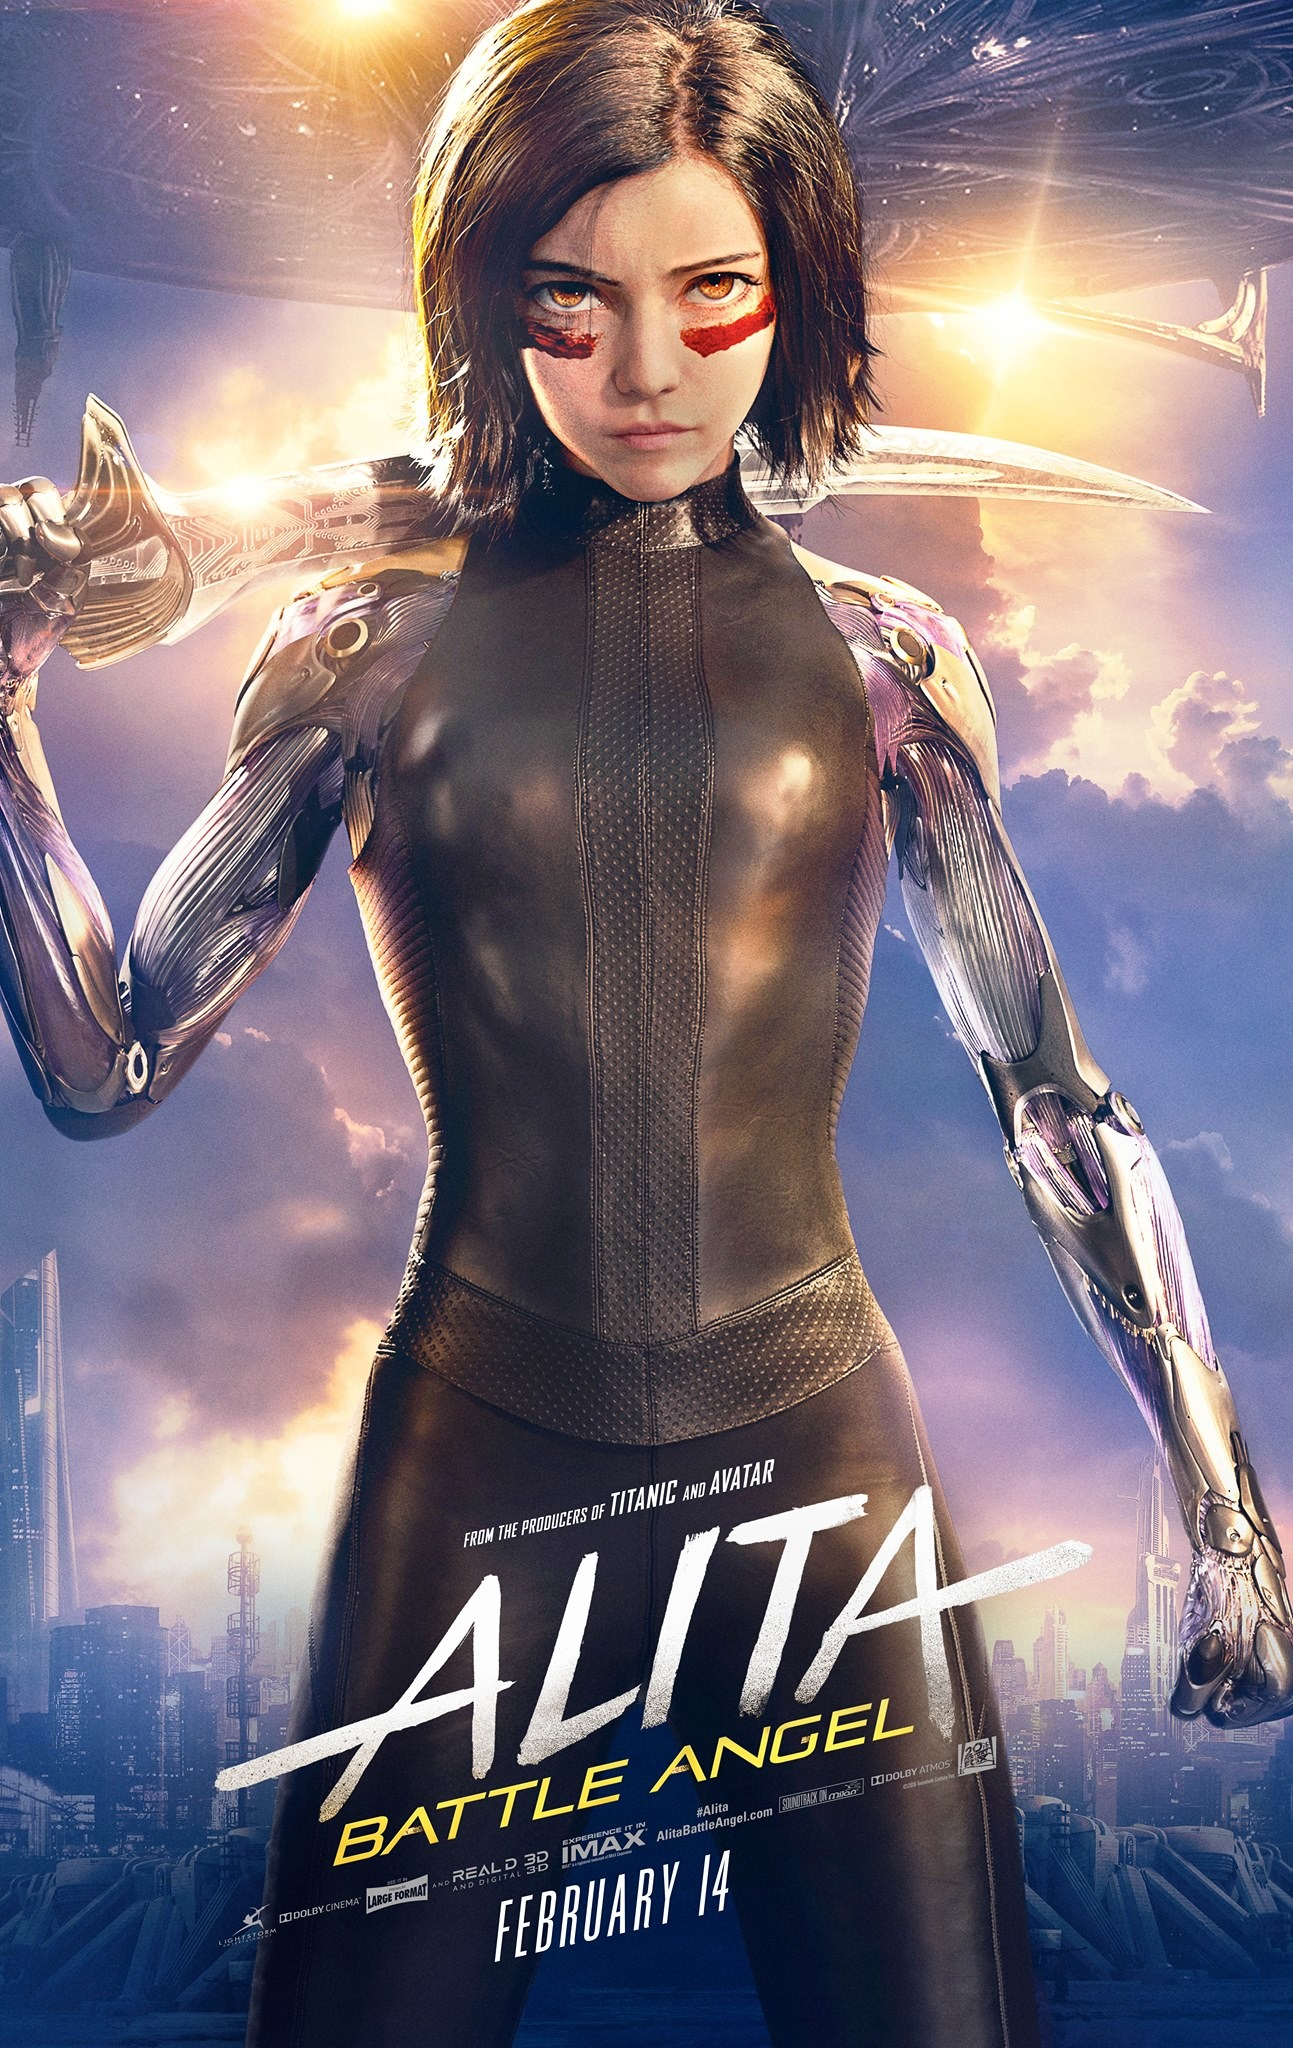 szmk_alita_battle_angel_harc_angyala_18.jpg